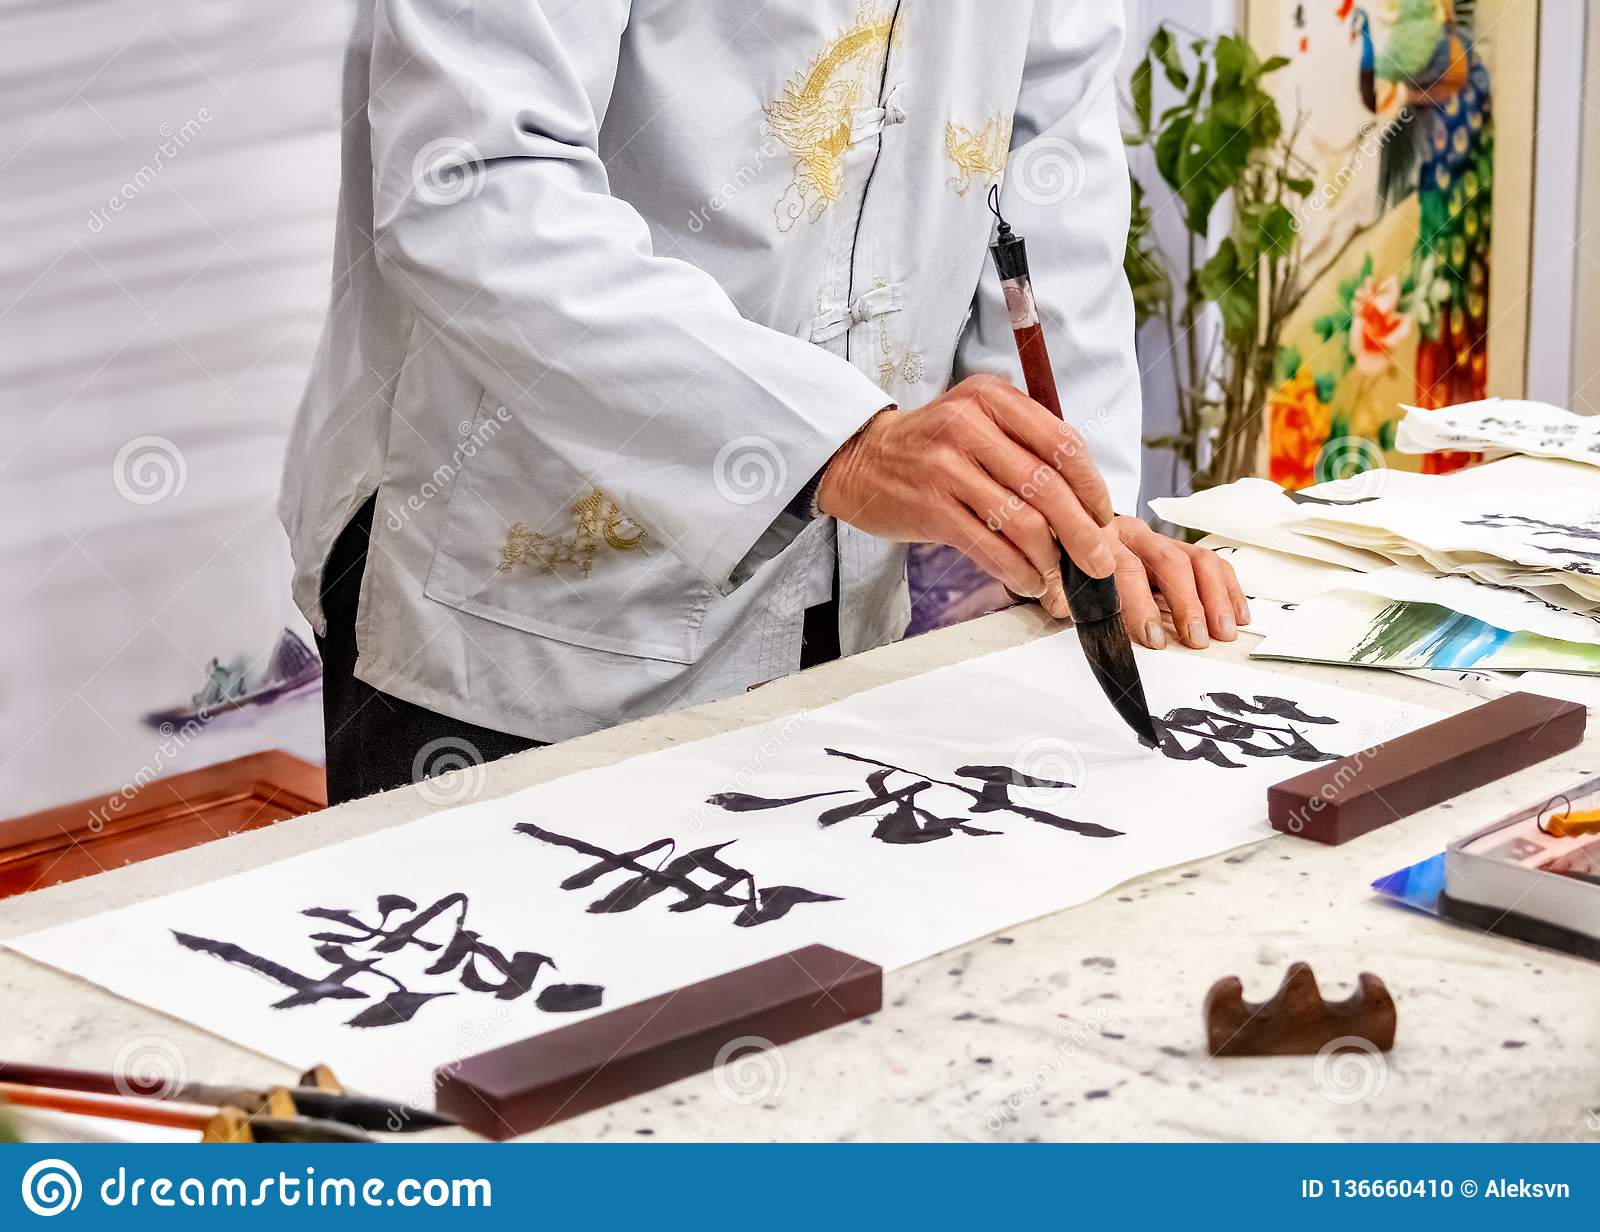 Asian caligraphy. The master of Chinese Caligraphy writes on rice paper characters and hieroglyphs that read Xin nian